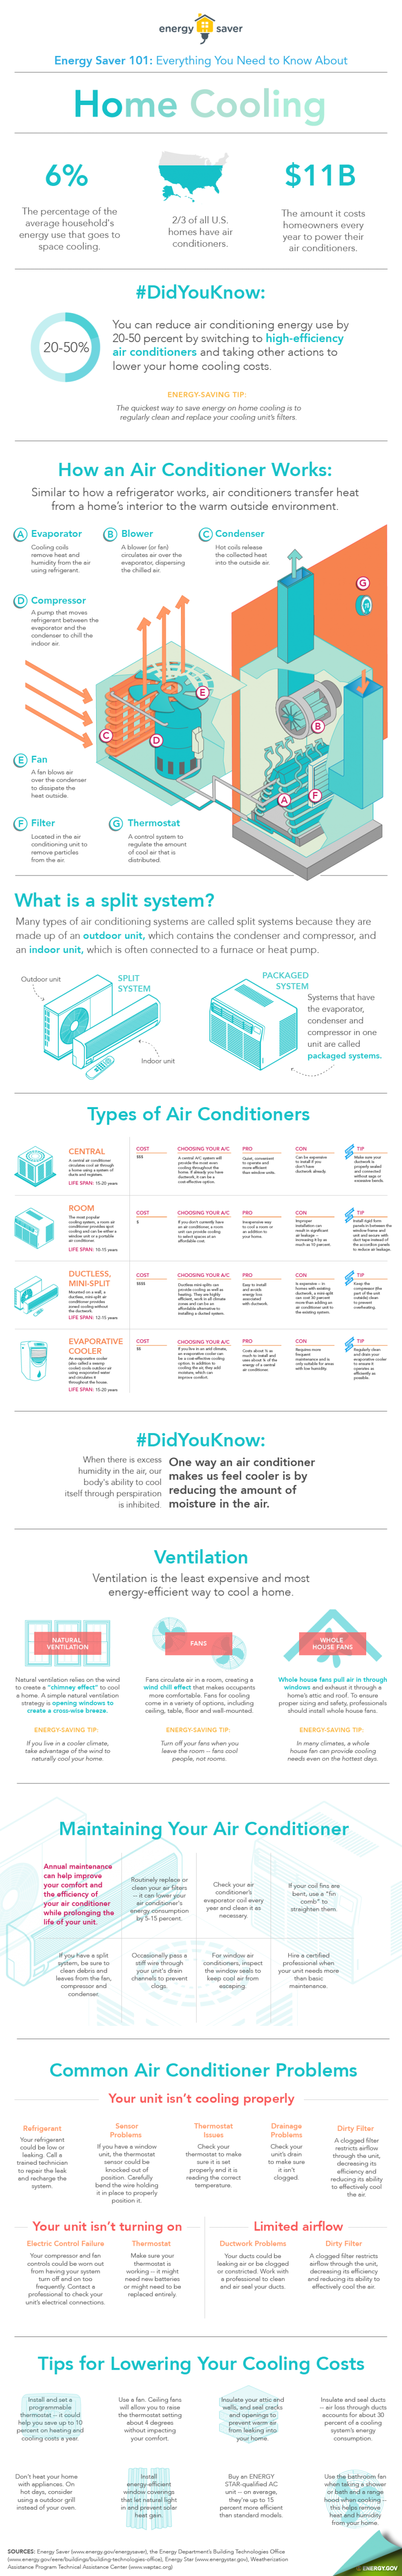 Energy Saver 101 Infographic: Everything you need to know about home cooling.